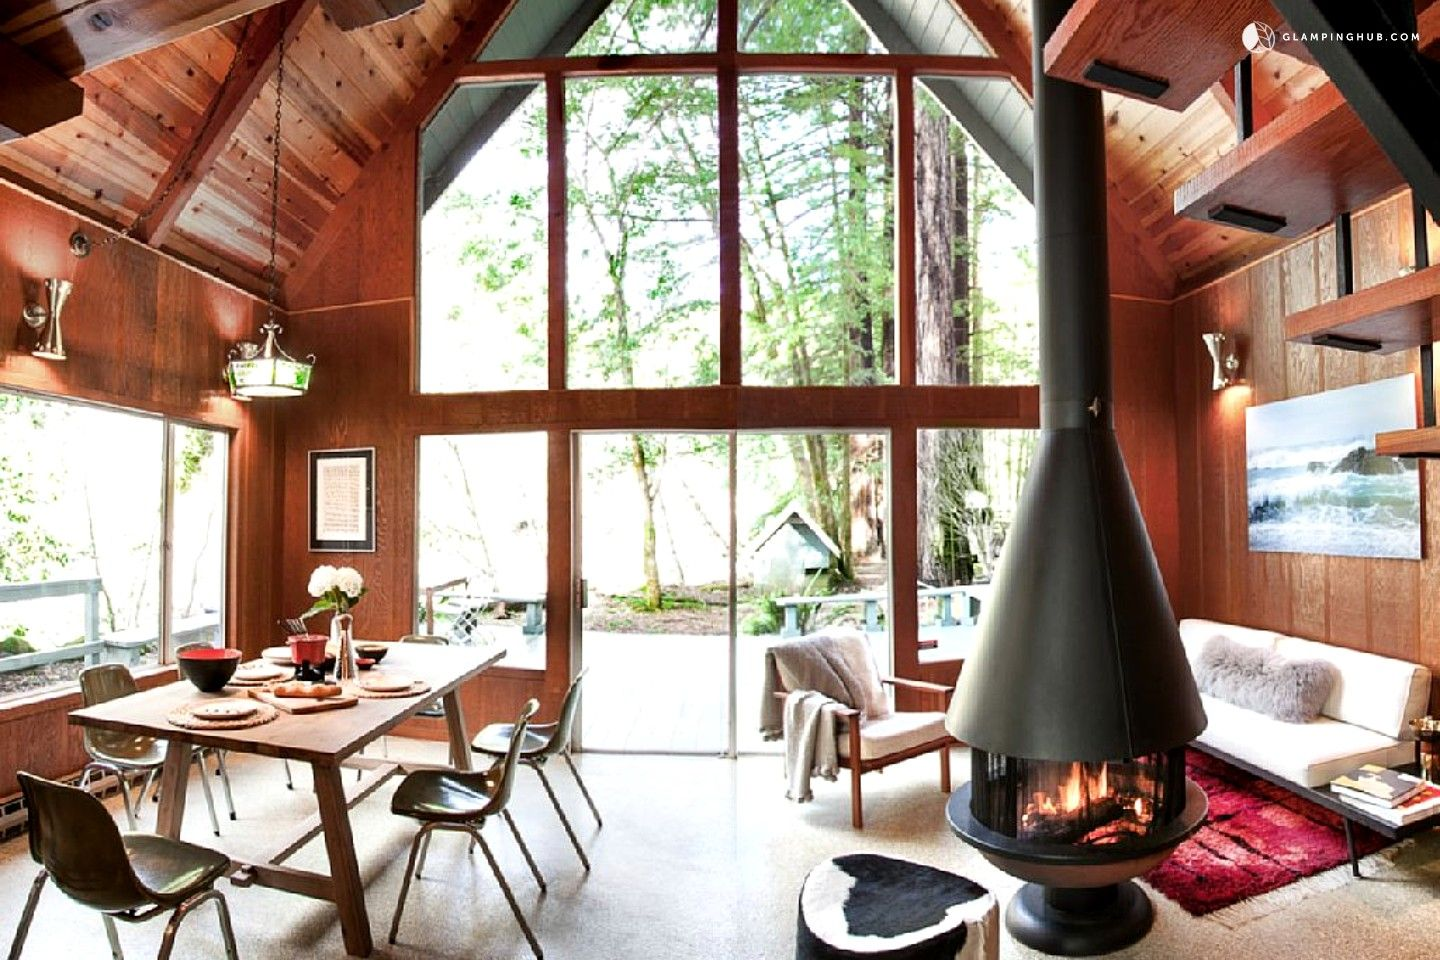 black cabin states frame vacation cabins rentals the door wild california united to americas yosemite a in